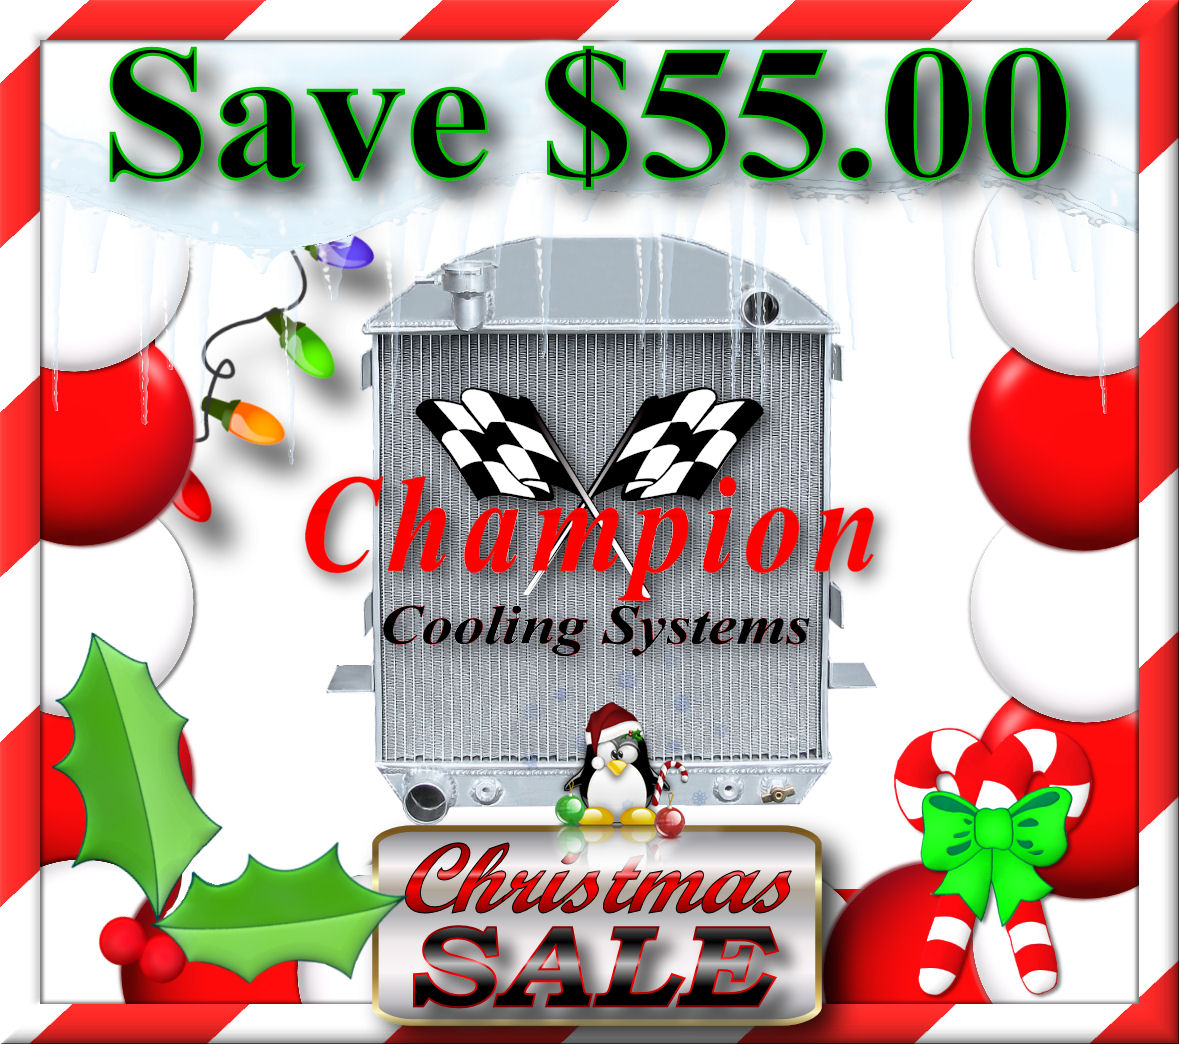 https://www.championcooling.com/photos/Christmas%20Sale/1007%20Christmas%20Sale.jpg